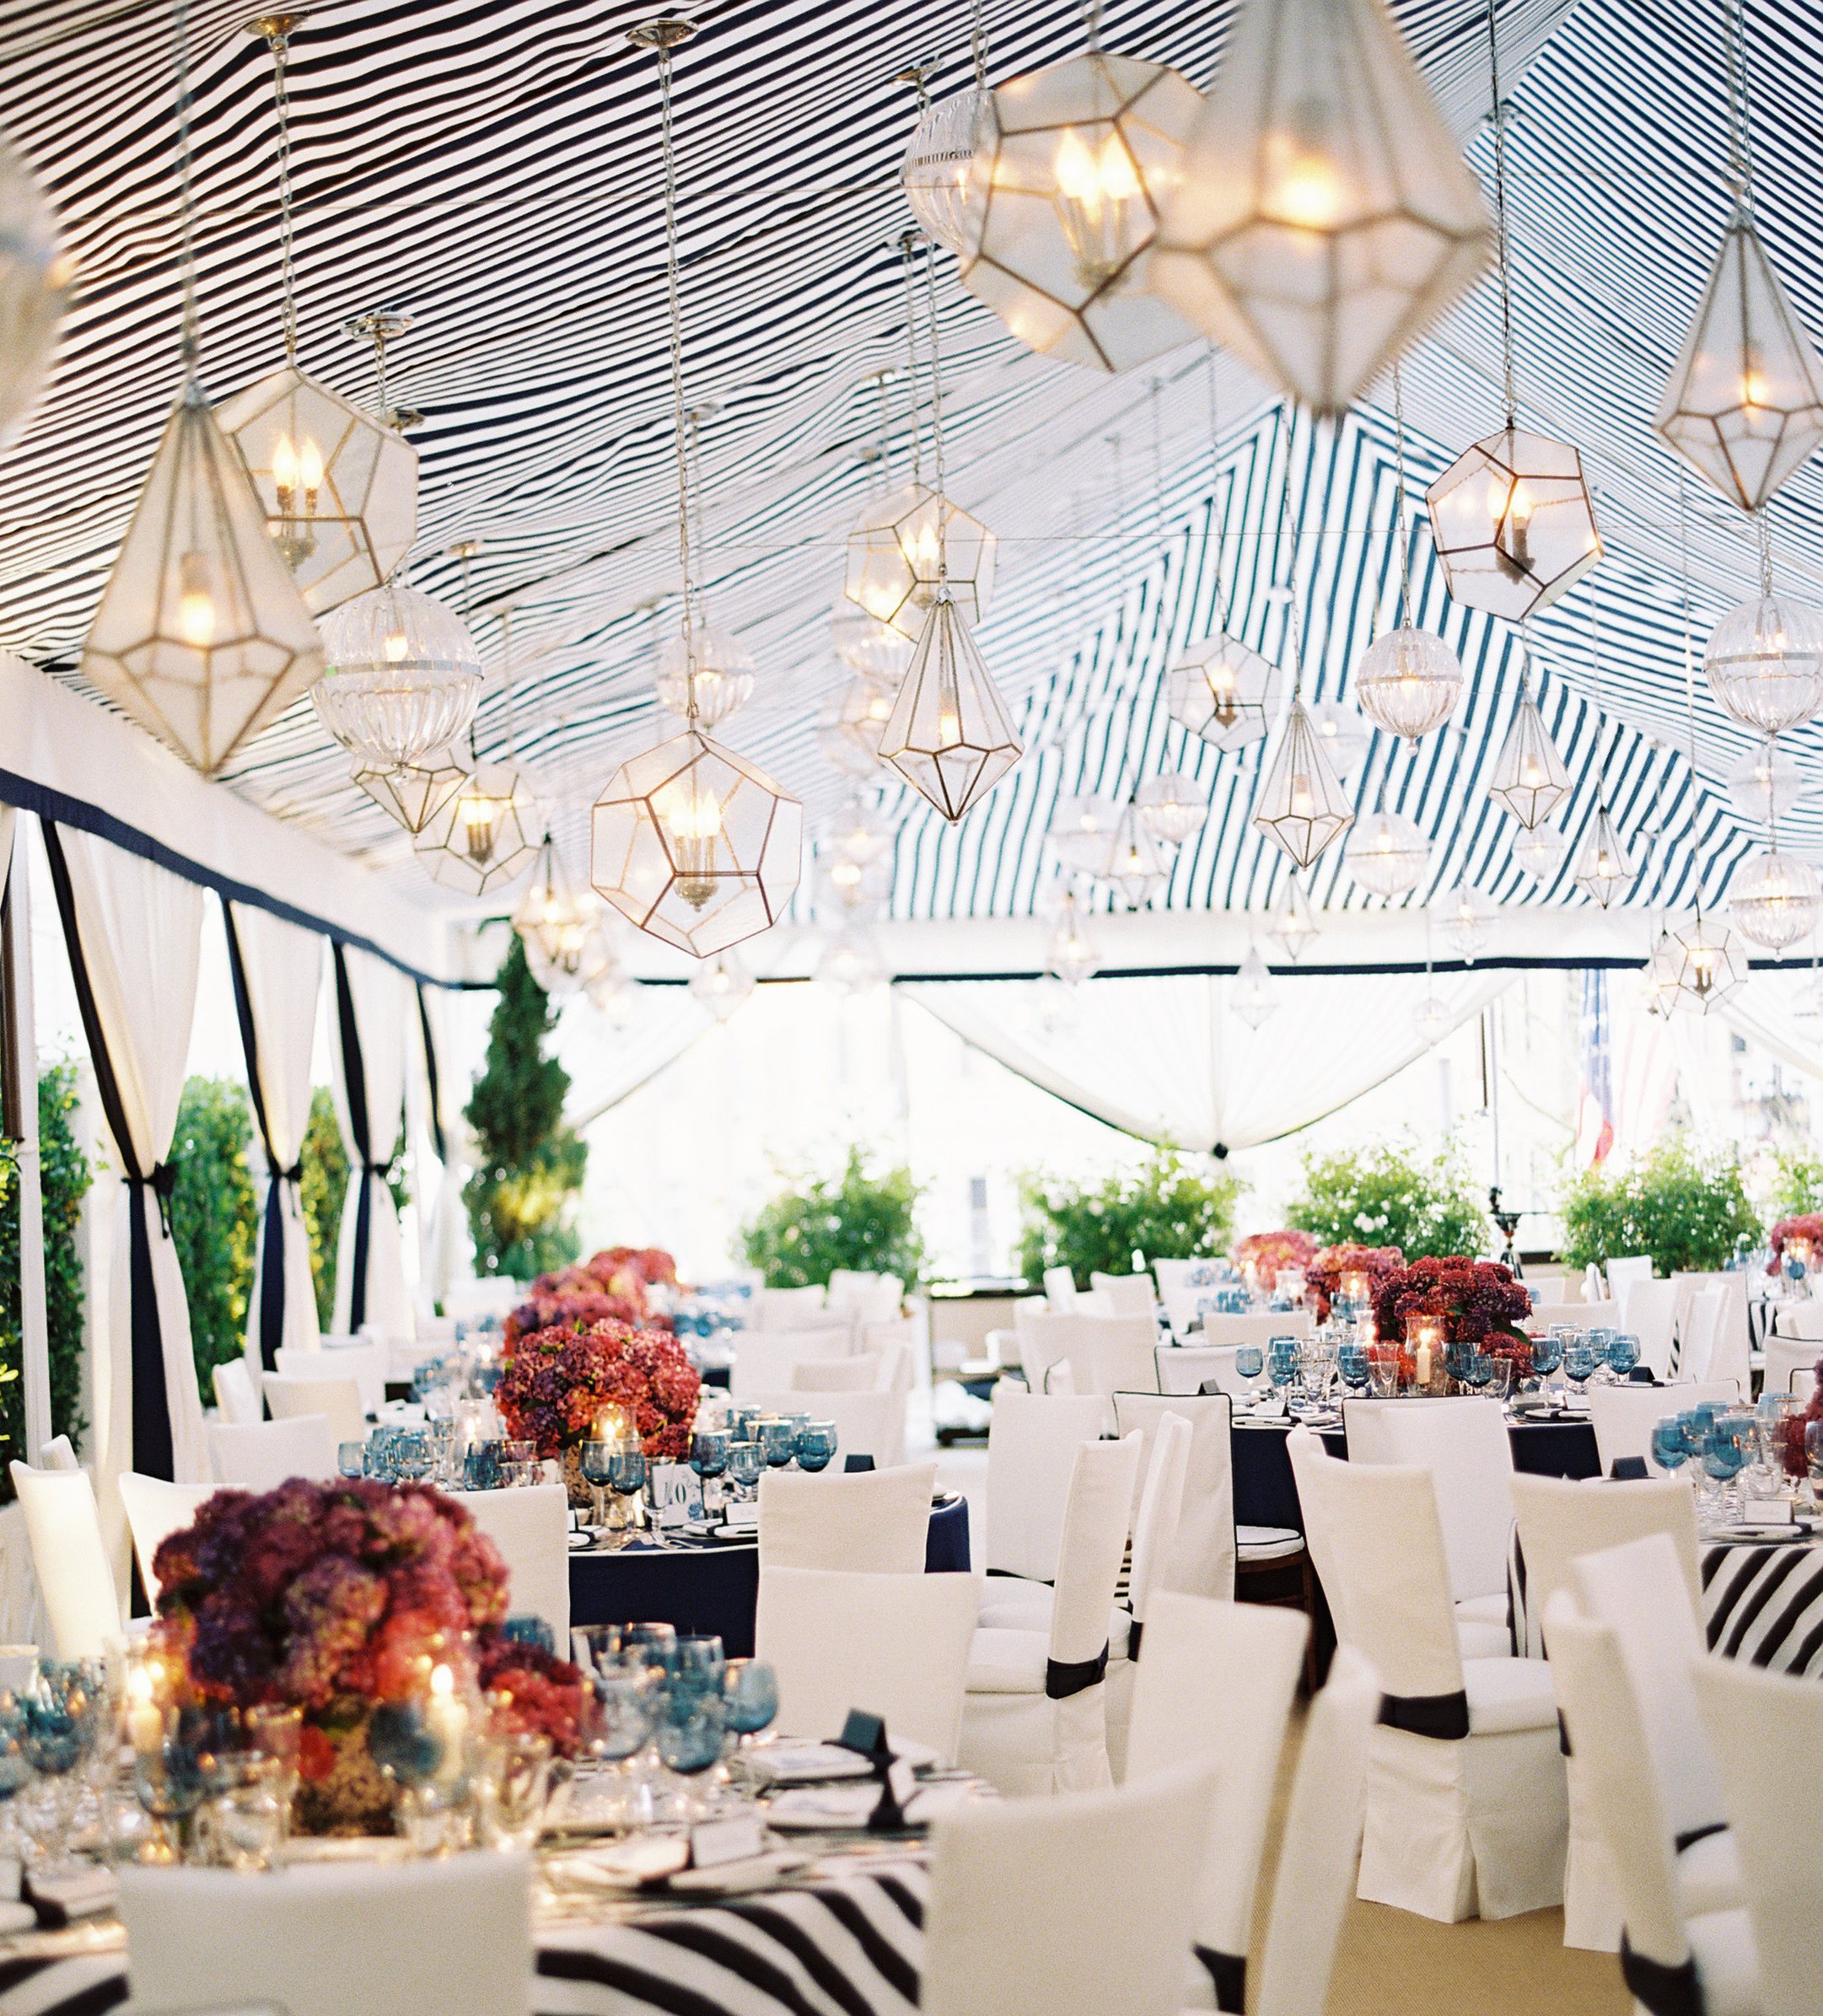 Navy blue and white stripe tent reception and linens for rehearsal dinner